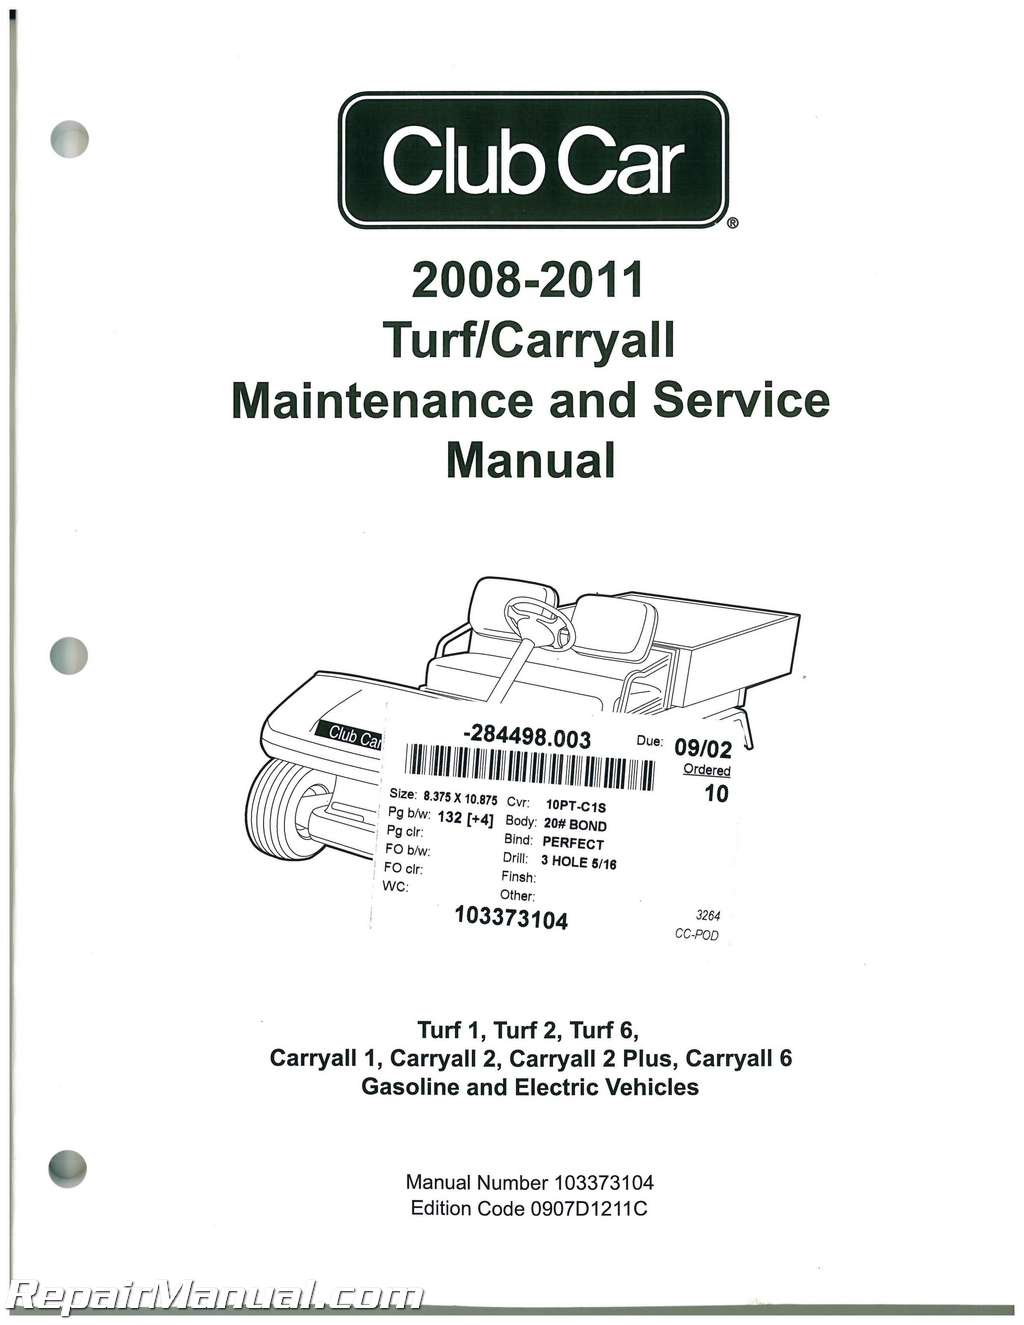 Club Car Turf Carryall Turf 1 Turf 2 Turf 6